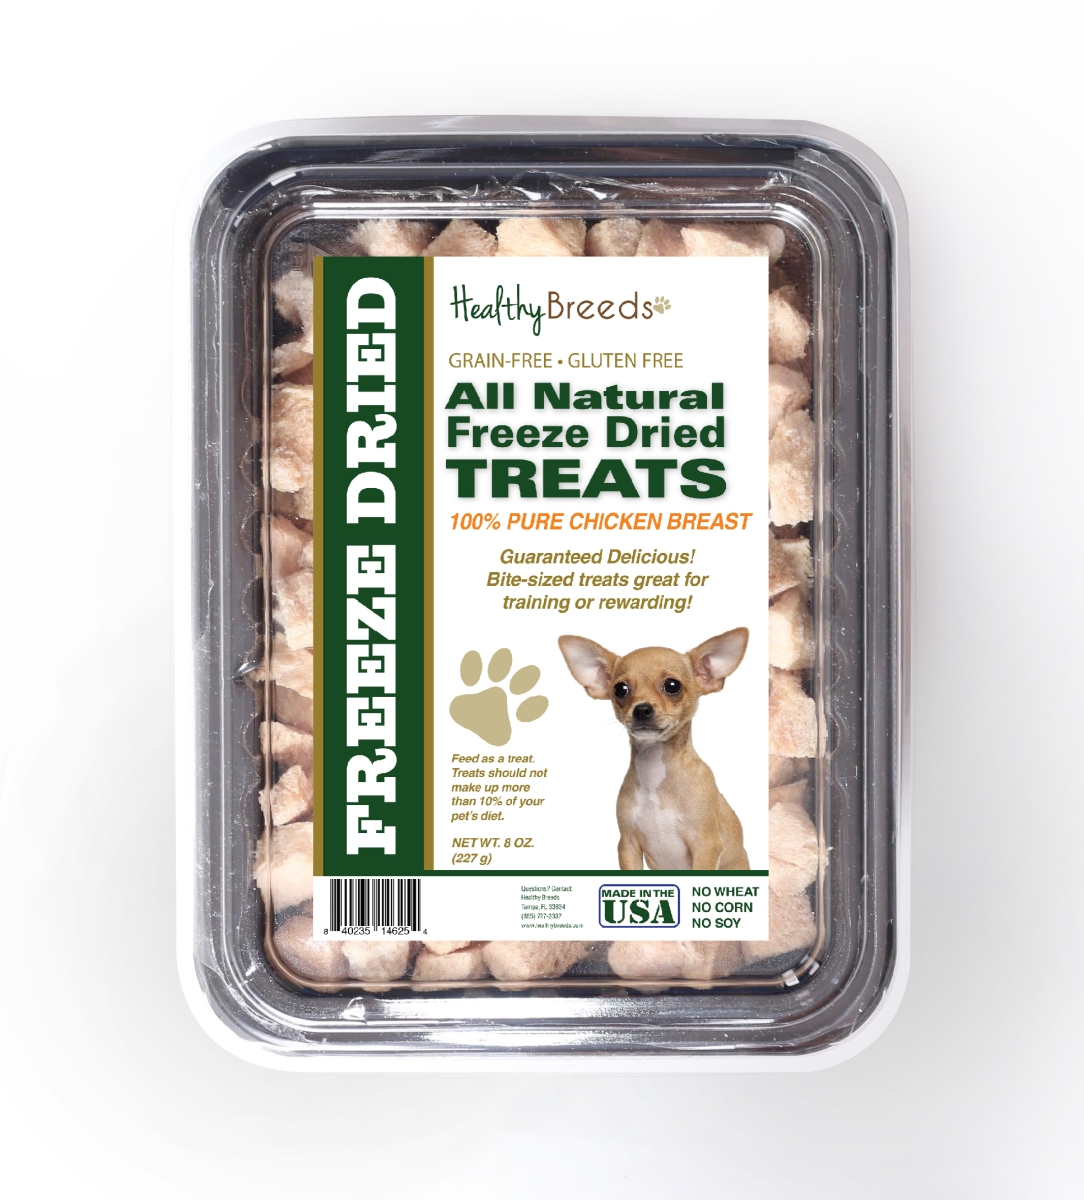 Healthy Breeds 840235146254 8 oz Chihuahua All Natural Freeze Dried Treats Chicken Breast